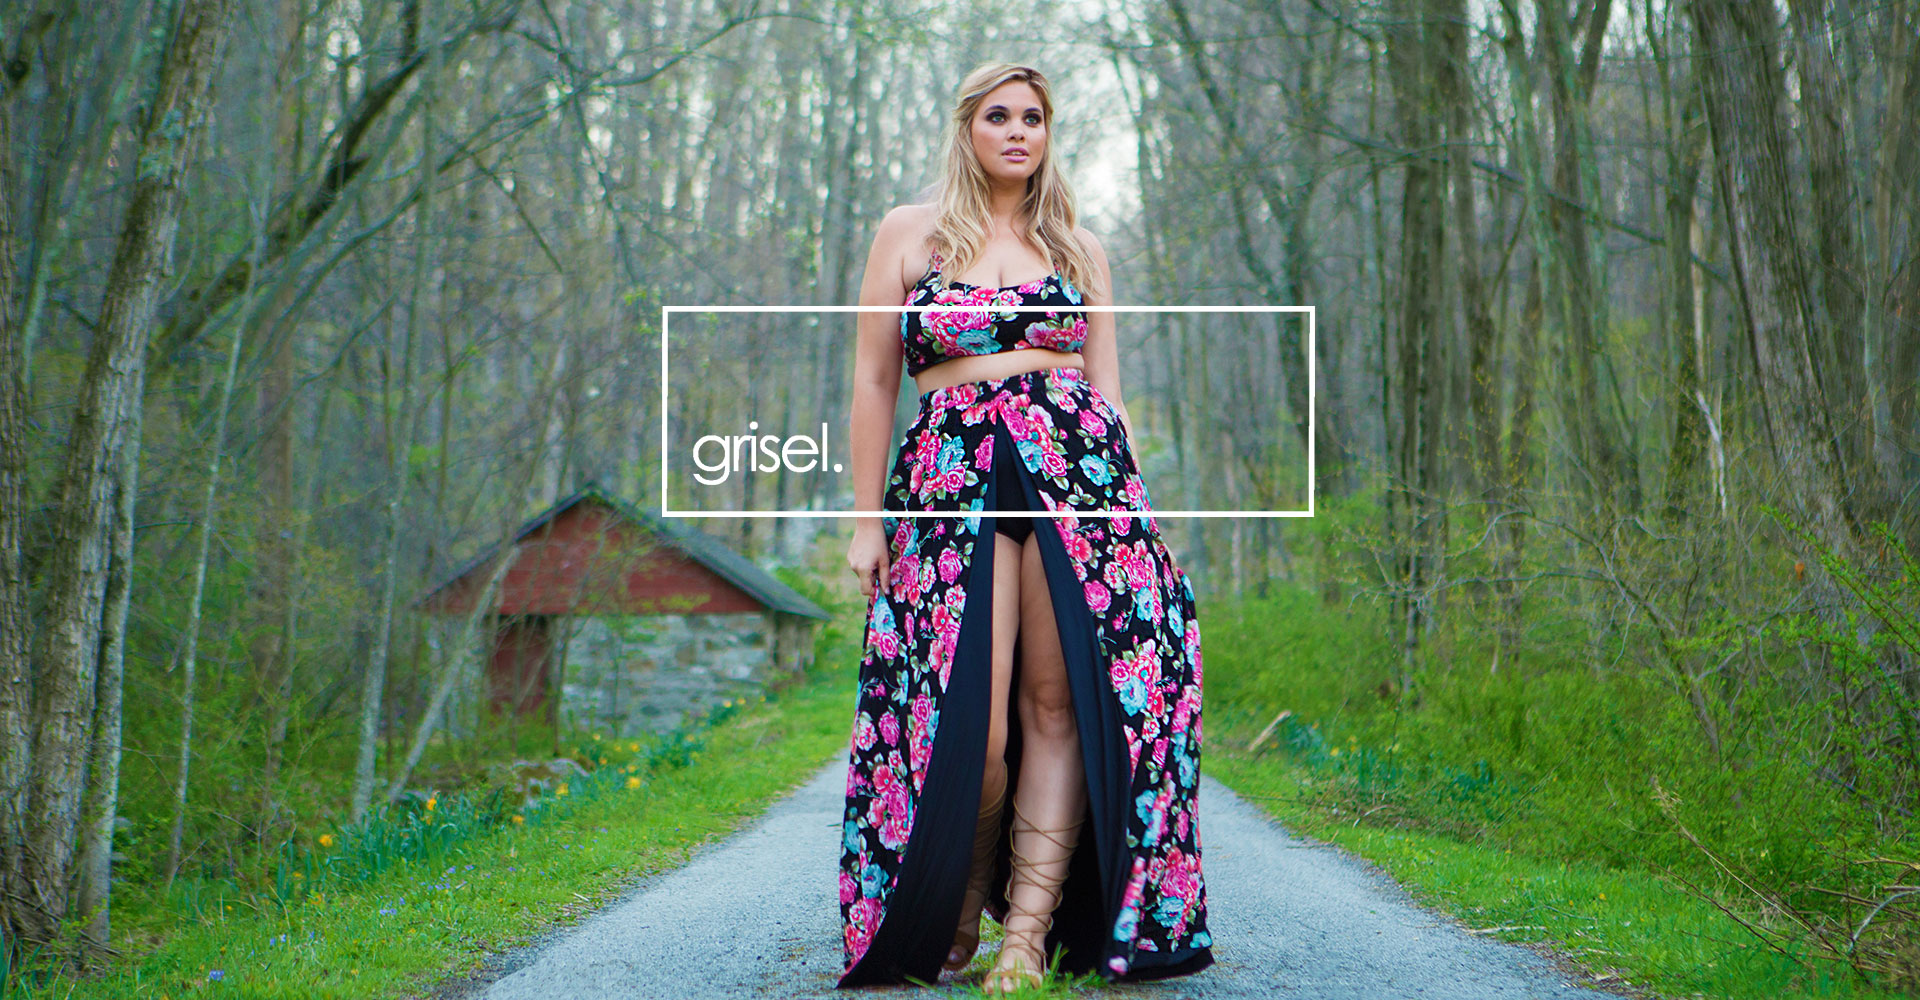 THE GRISEL COLLECTION. SPRING SUMMER 2016